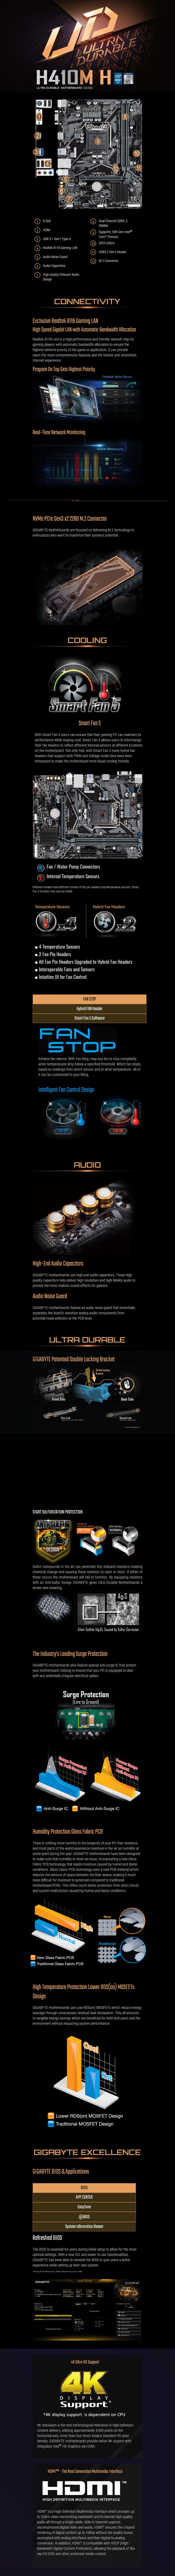 Gigabyte H410M H LGA 1200 Micro-ATX Motherboard - Overview 1